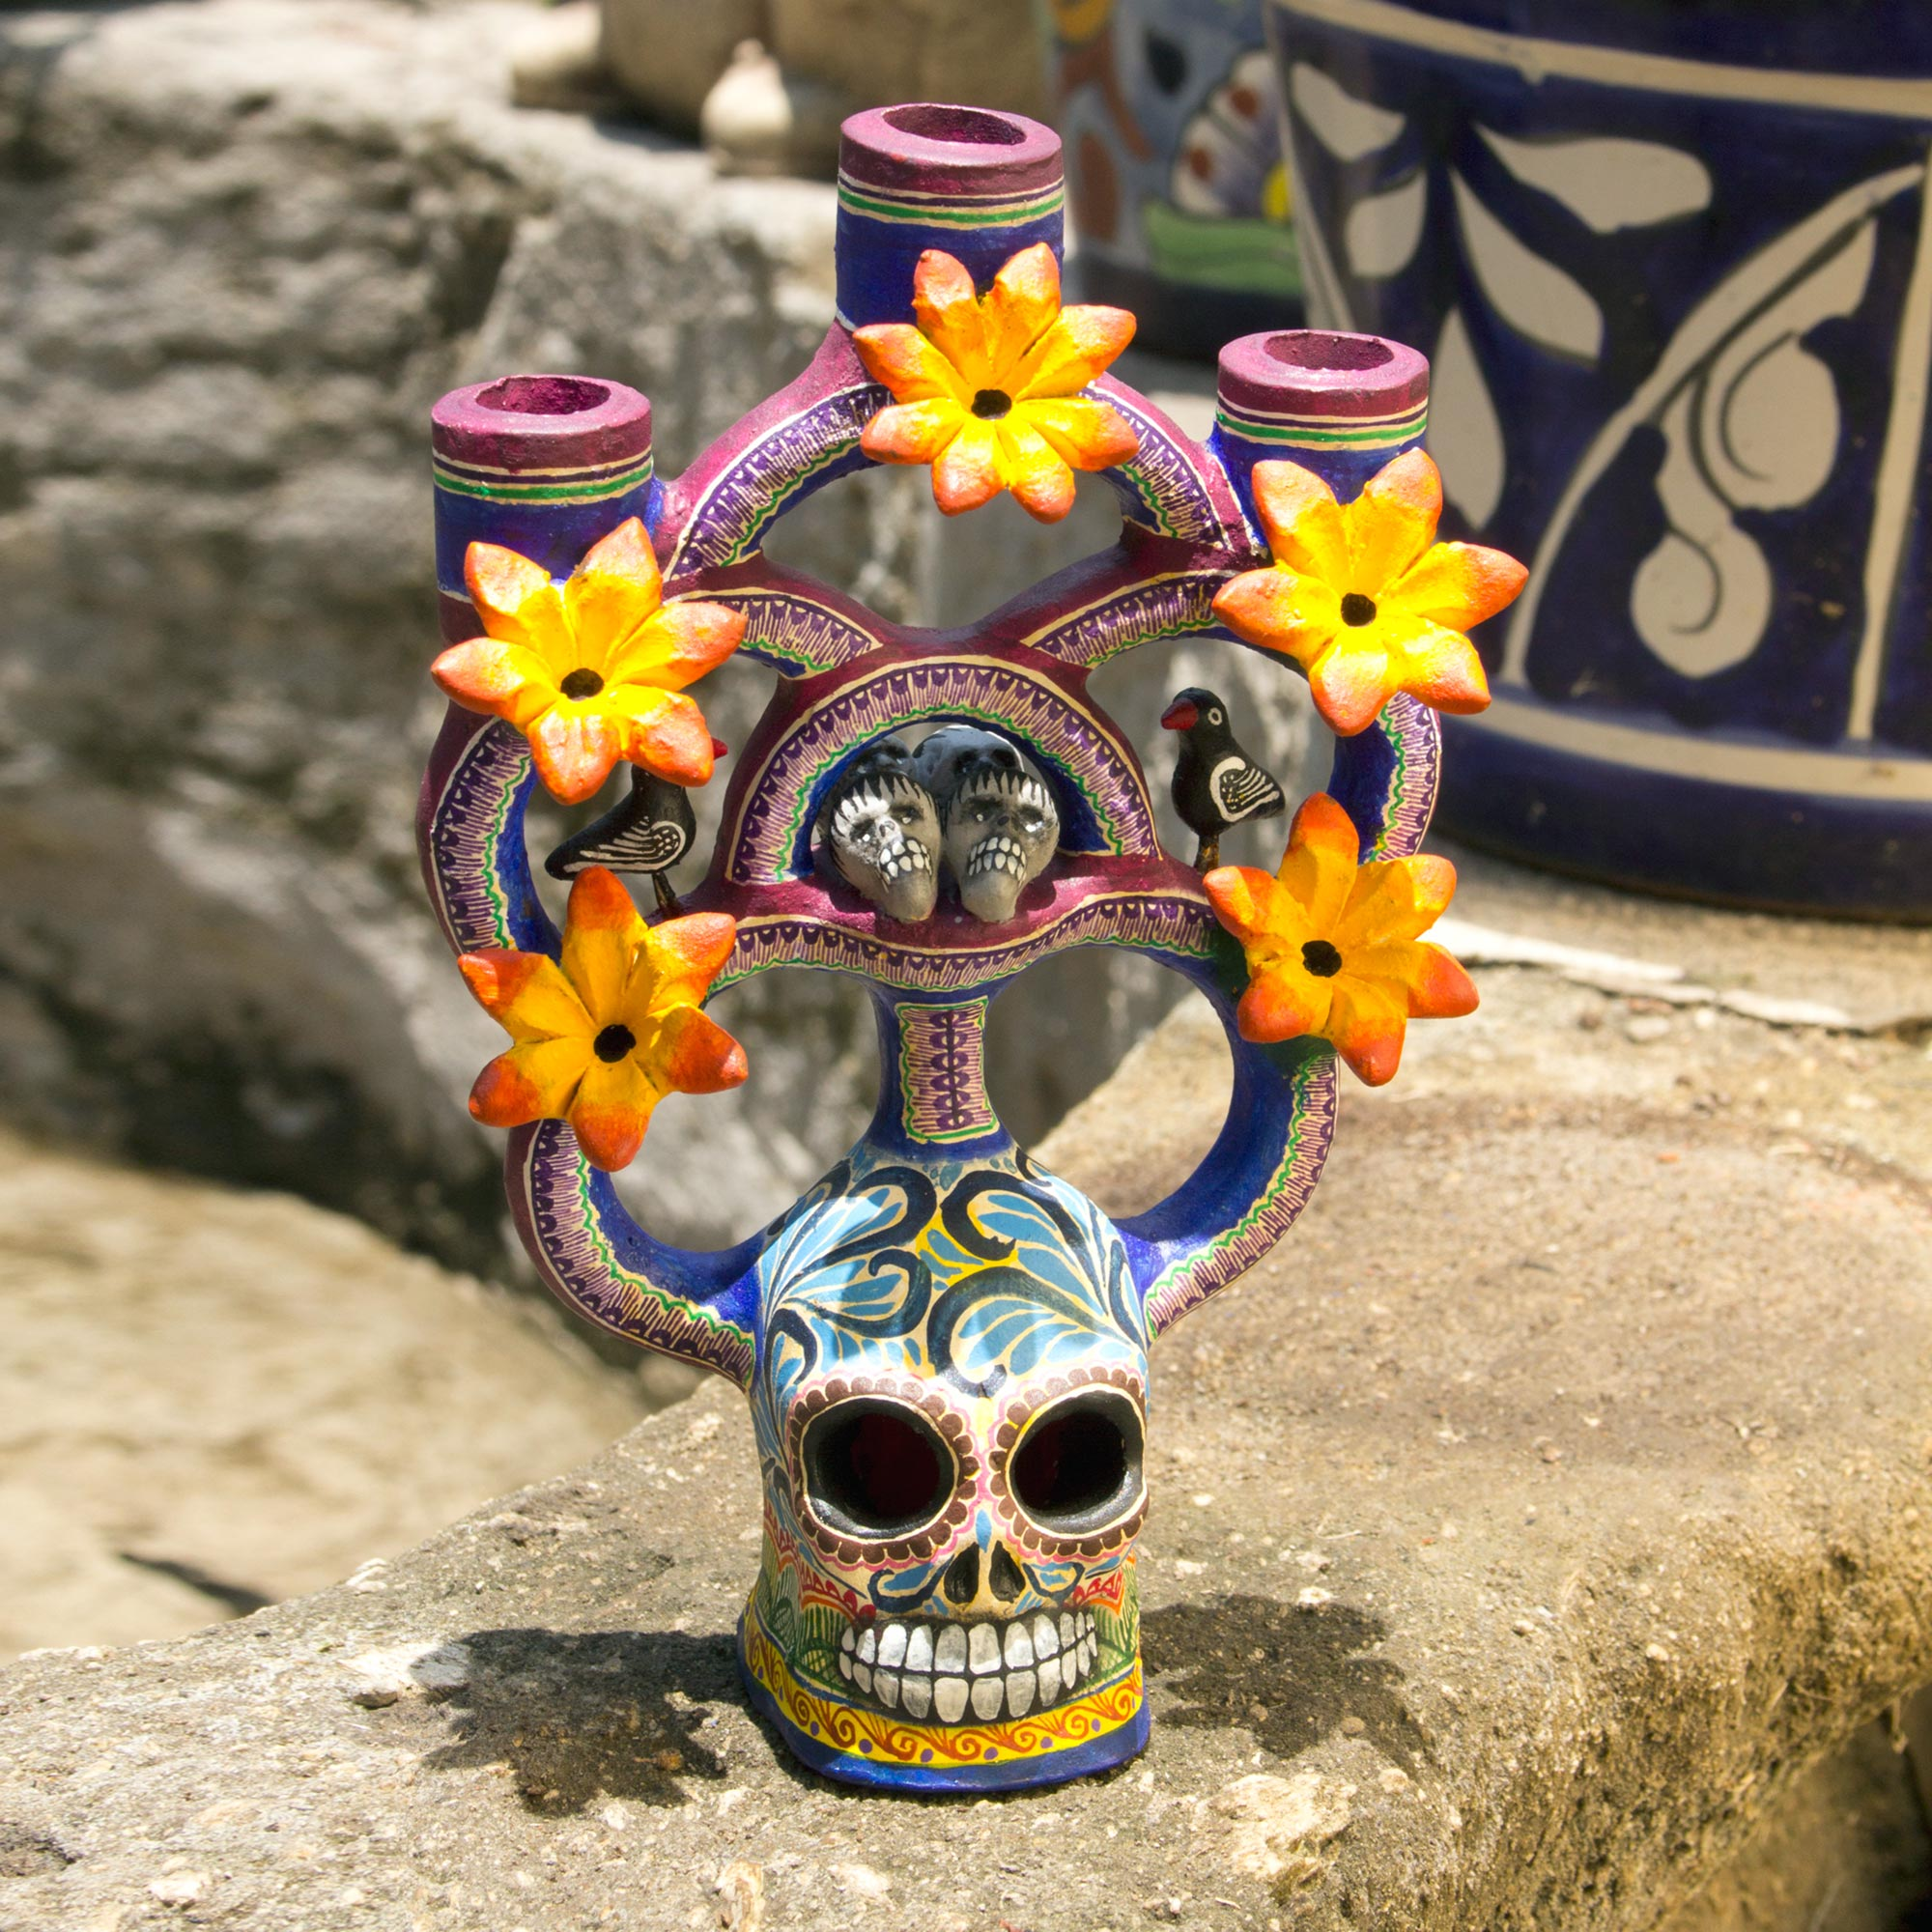 Handcrafted Floral Ceramic Day of the Dead Candle Holder, 'Day of the Dead Tree of Life'